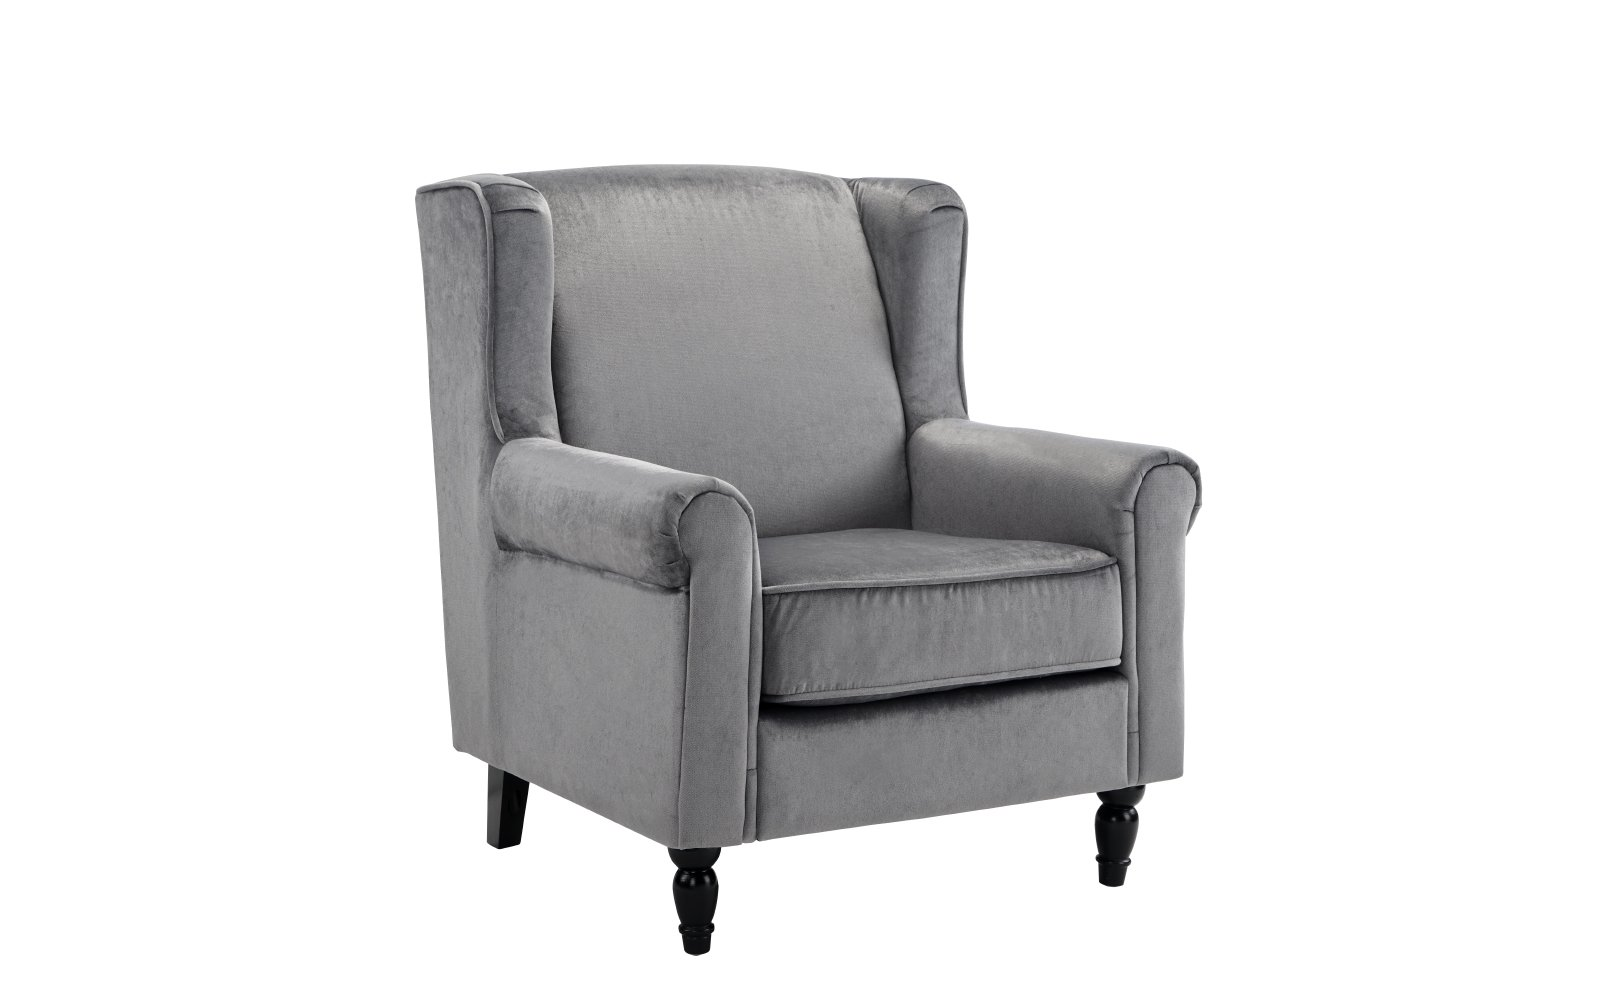 Grey Modern Velvet Fabric Upholstered Arm Chair Accent ...